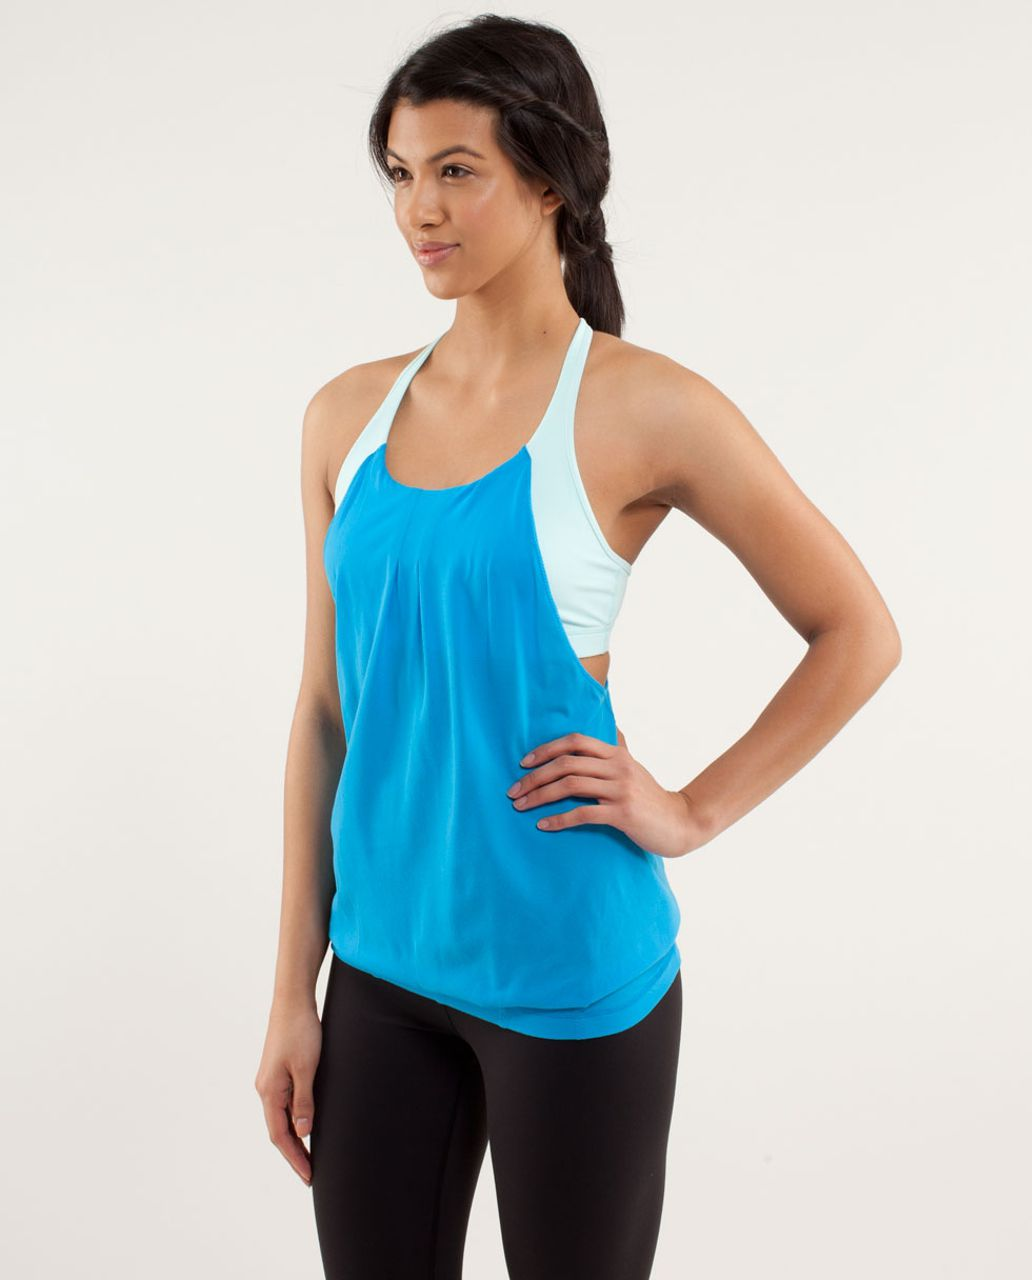 Lululemon Practice Freely Tank - Beach Blanket Blue / Aquamarine